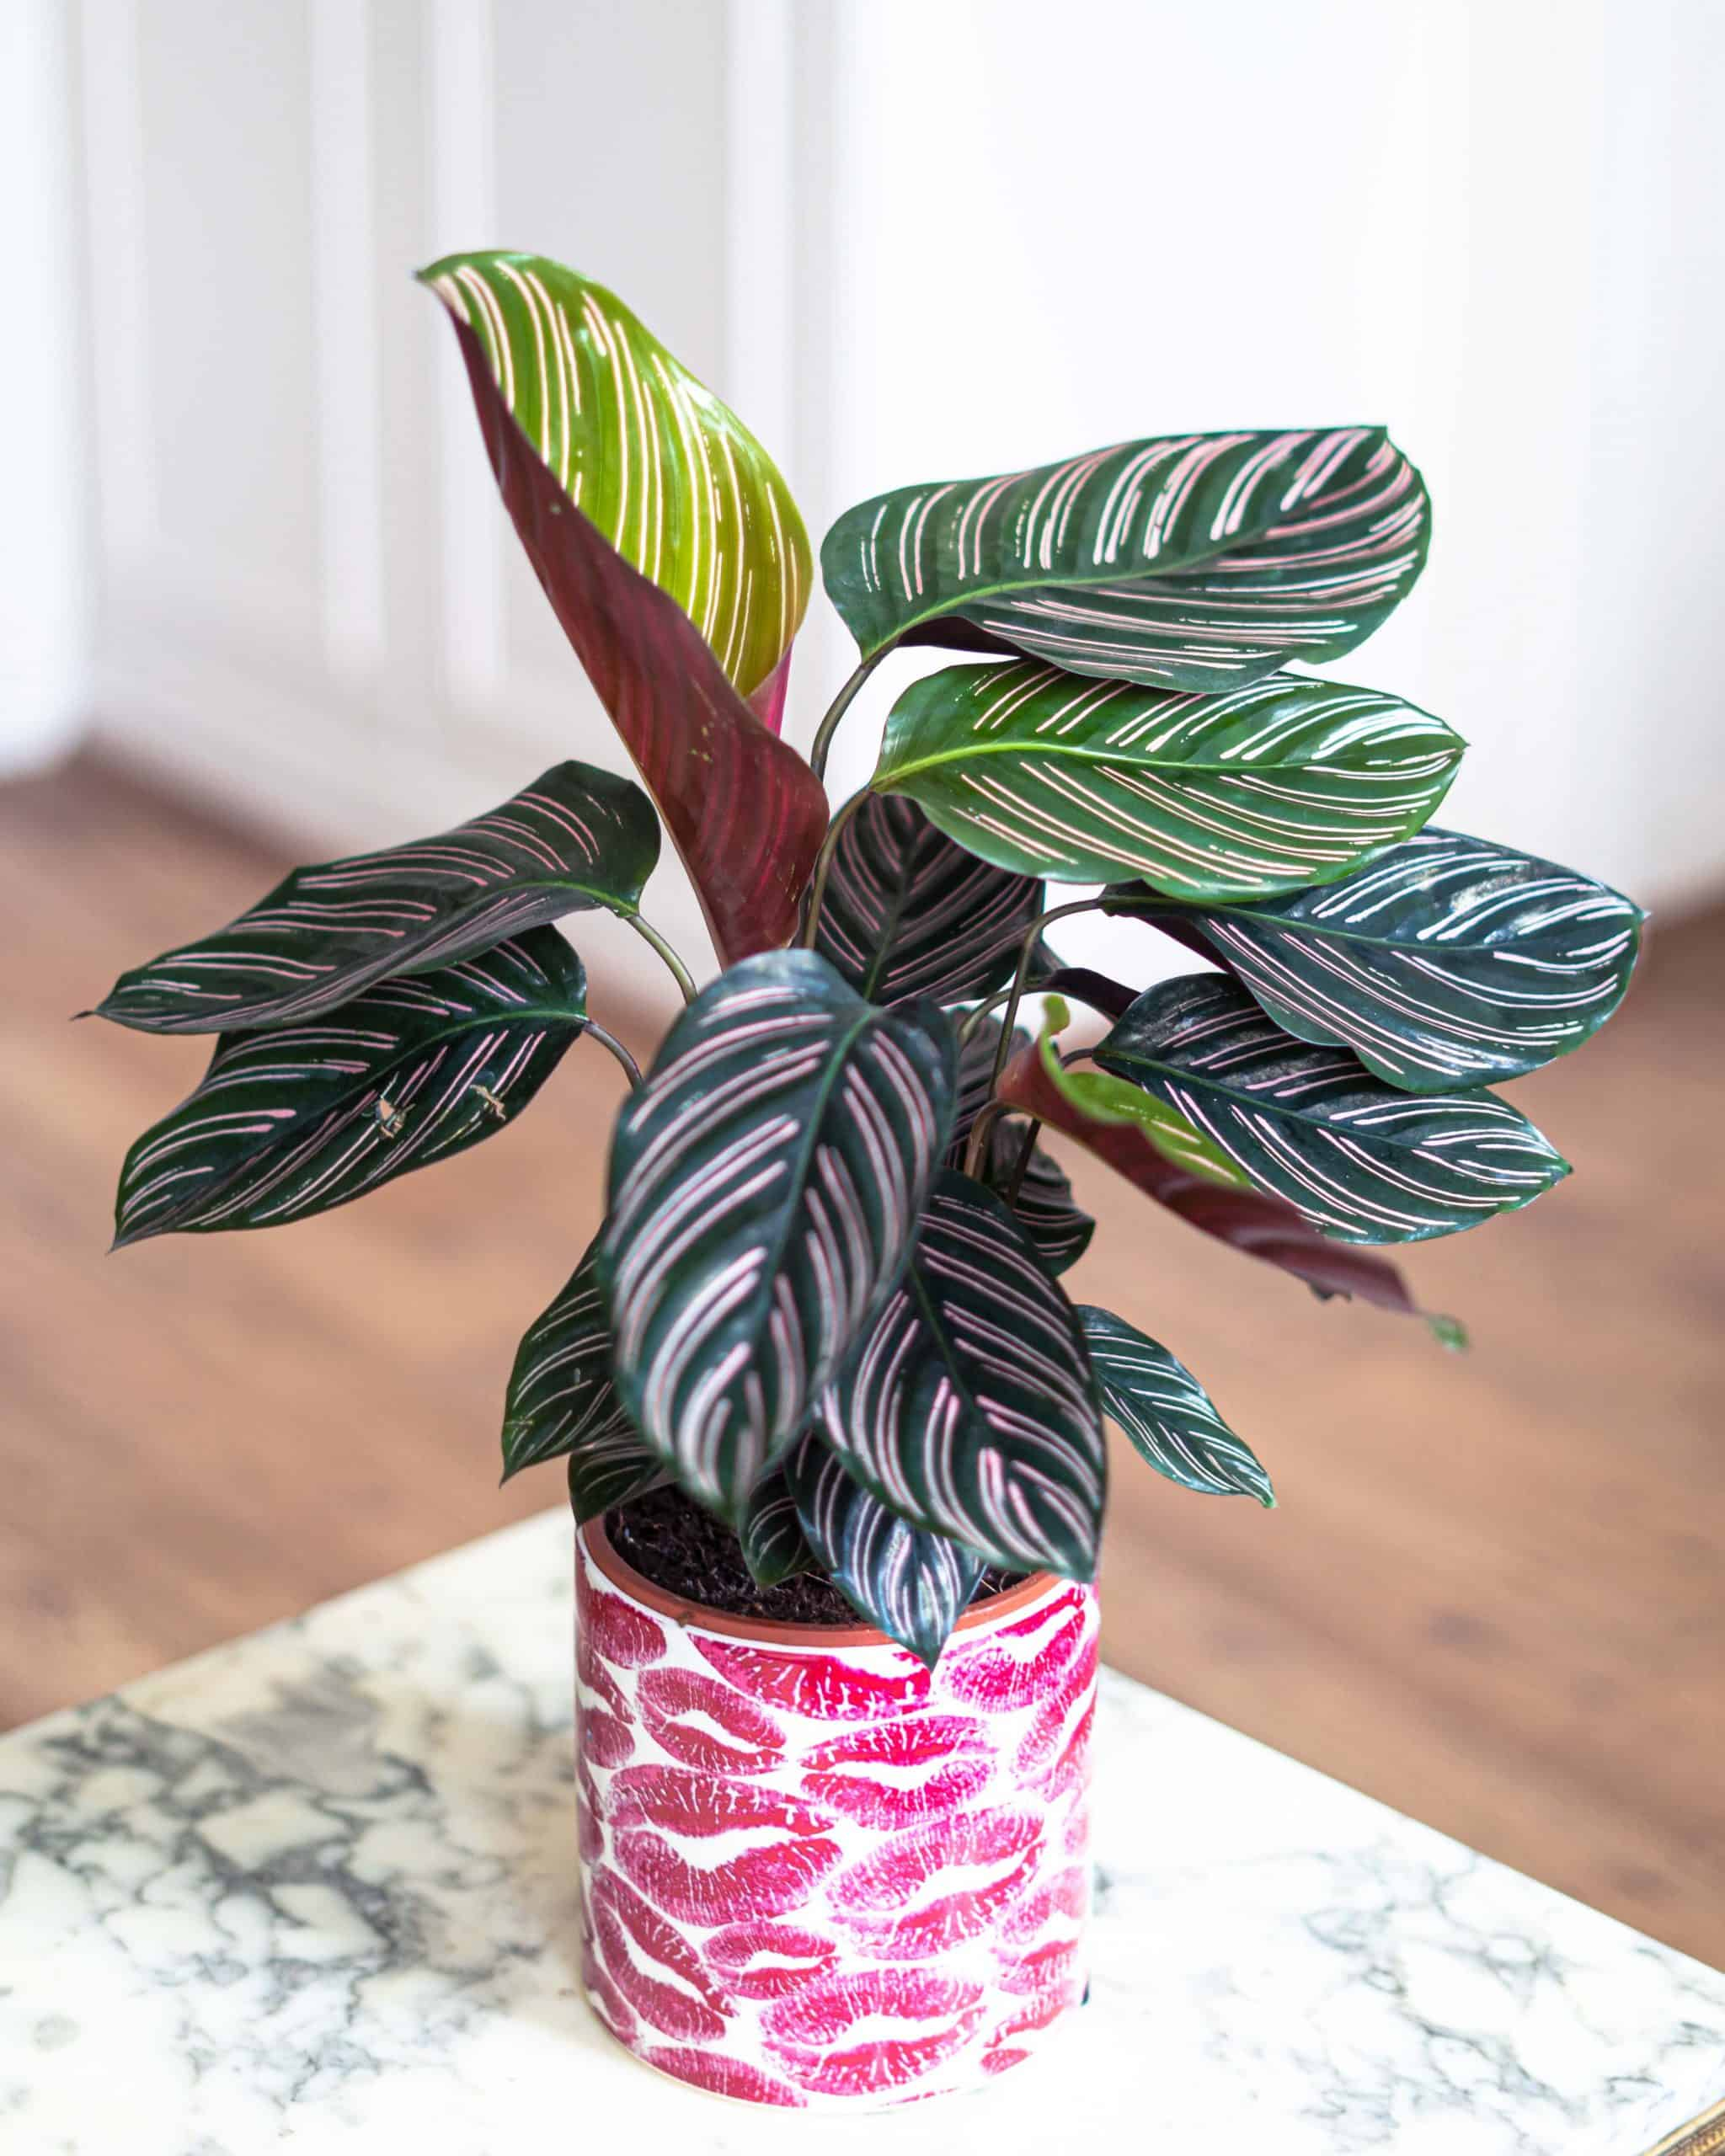 Calathea Ornata (Pinstripe Calathea) Care Guide & Tips including how to propagate the Calathea Ornata